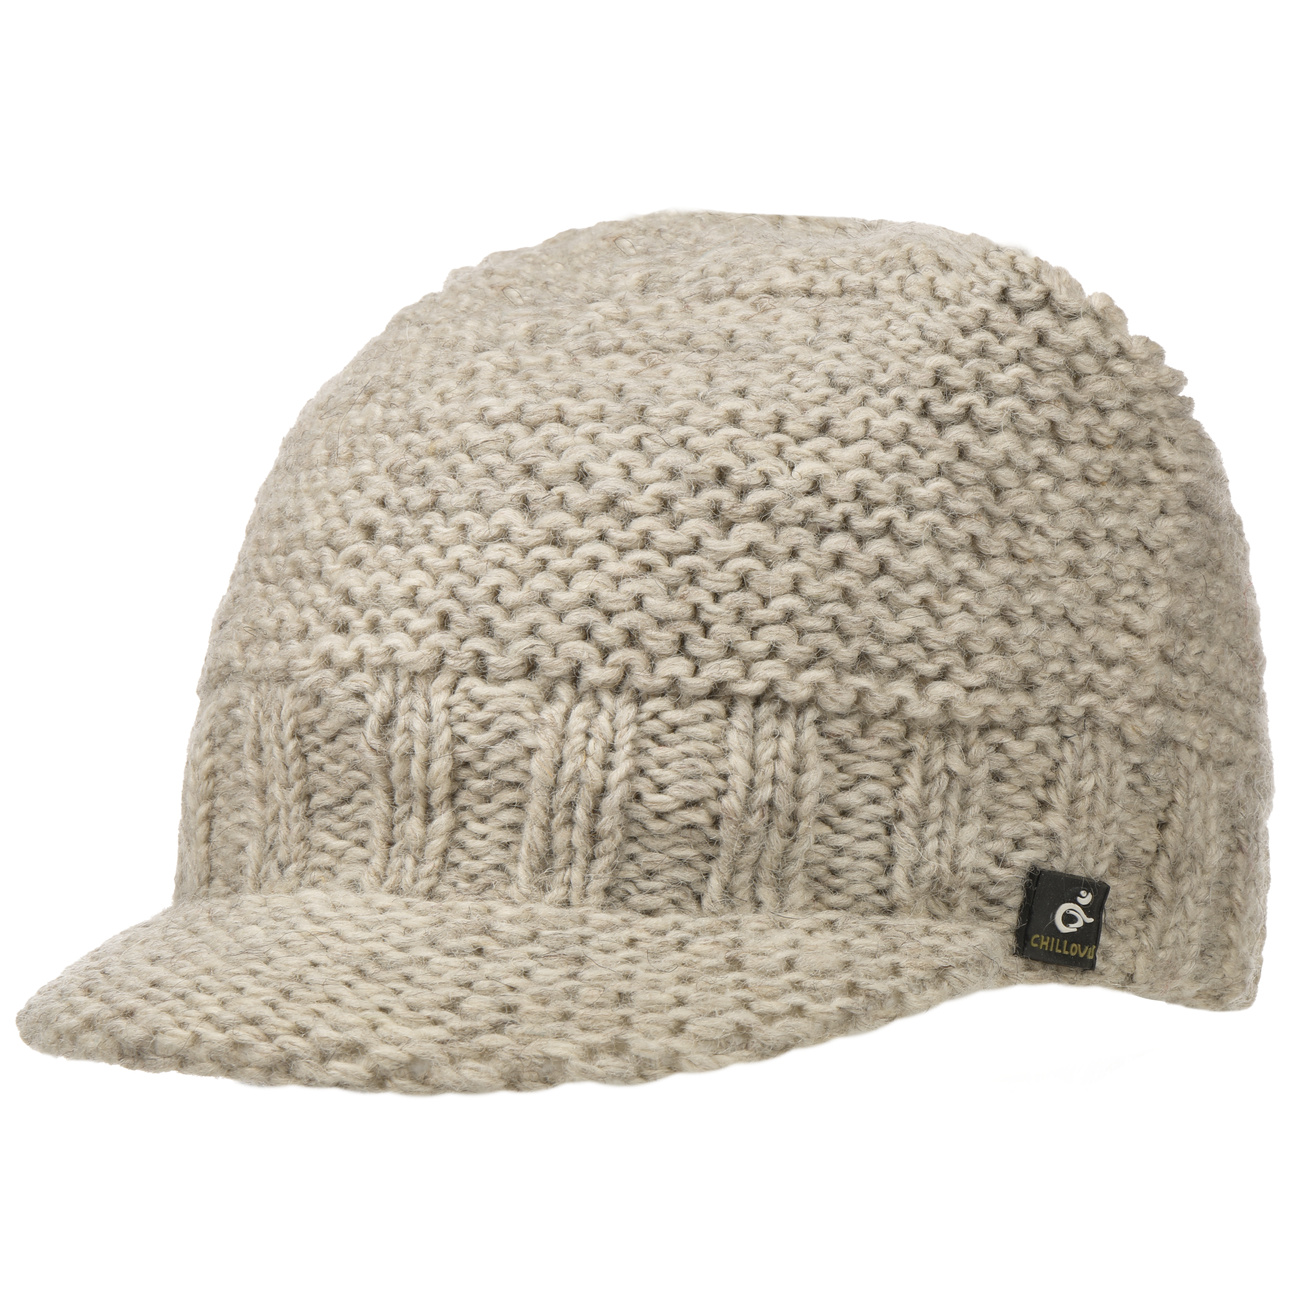 Bonnet en Tricot Inverno Wool by Chillouts  bonnet de ski